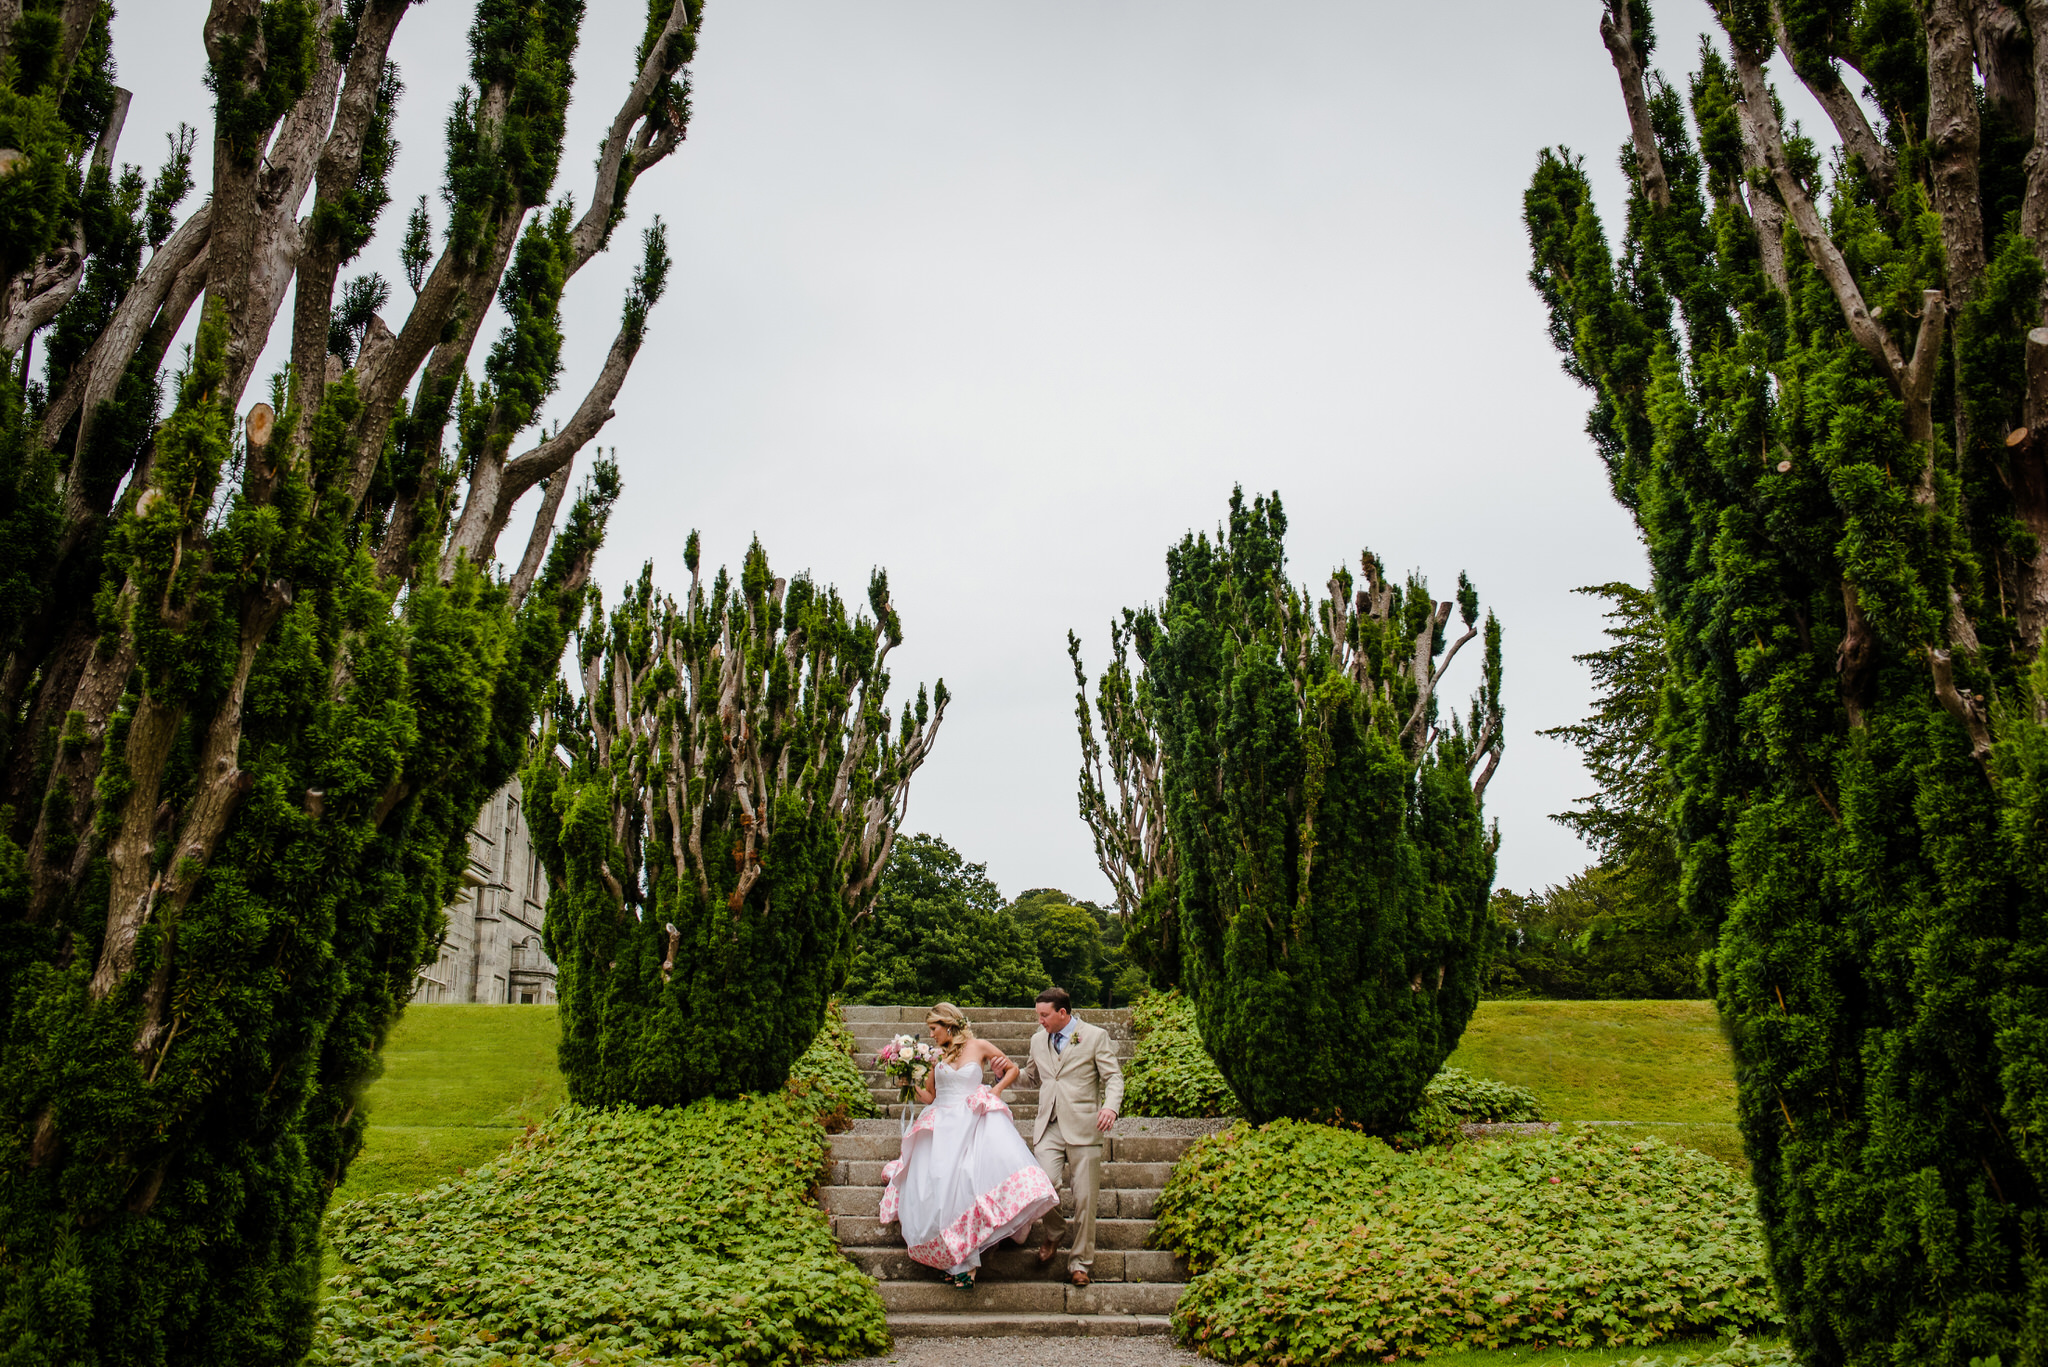 Wedding Portrait at Kilruddery House and Gardens in Bray, Ireland - International Destination Wedding by Zee Anna Photography